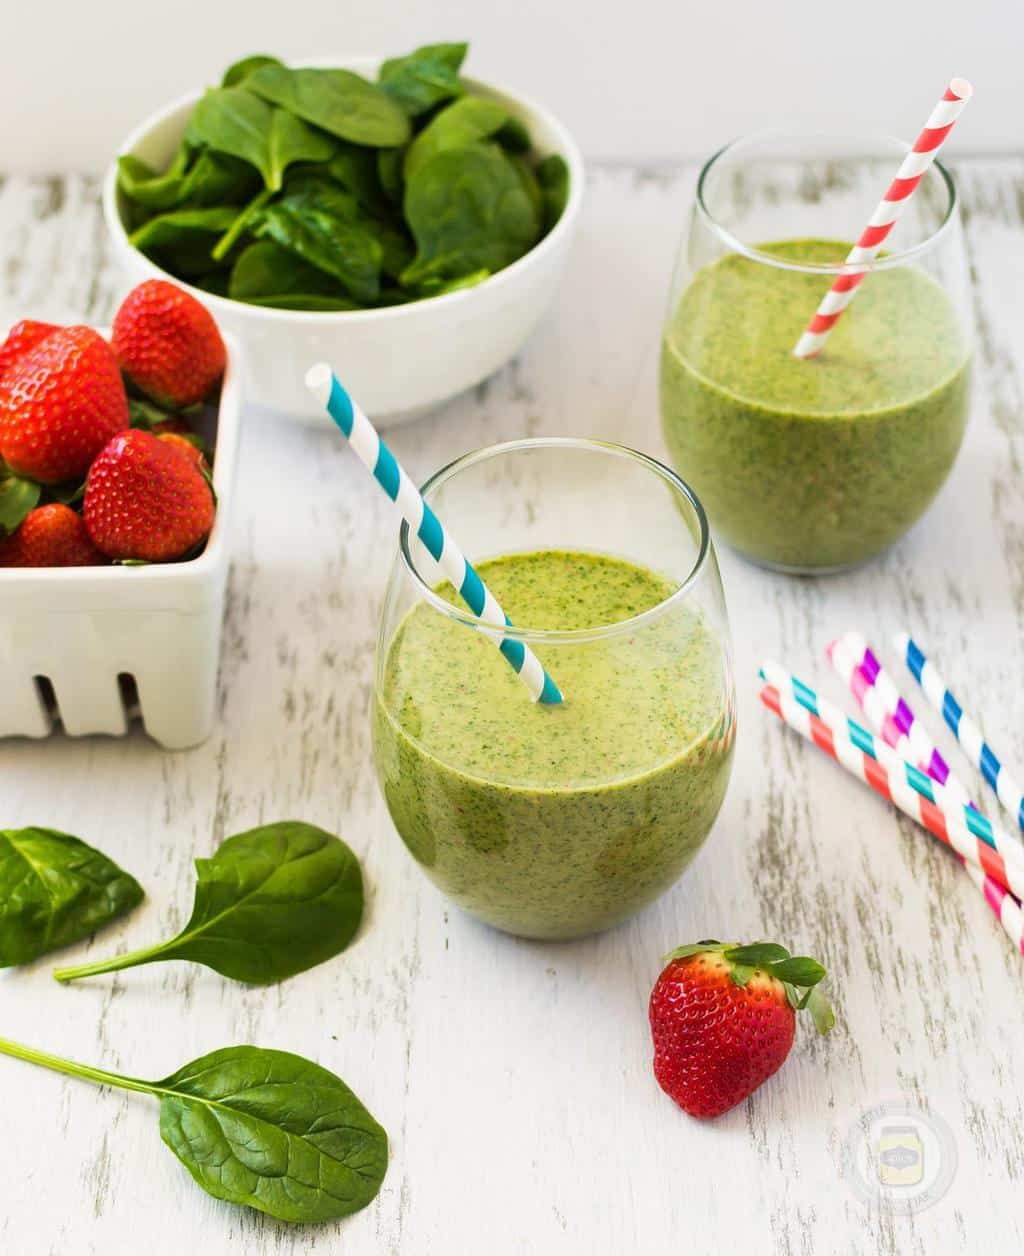 15 Kale Smoothie Recipes That Actually Taste Great